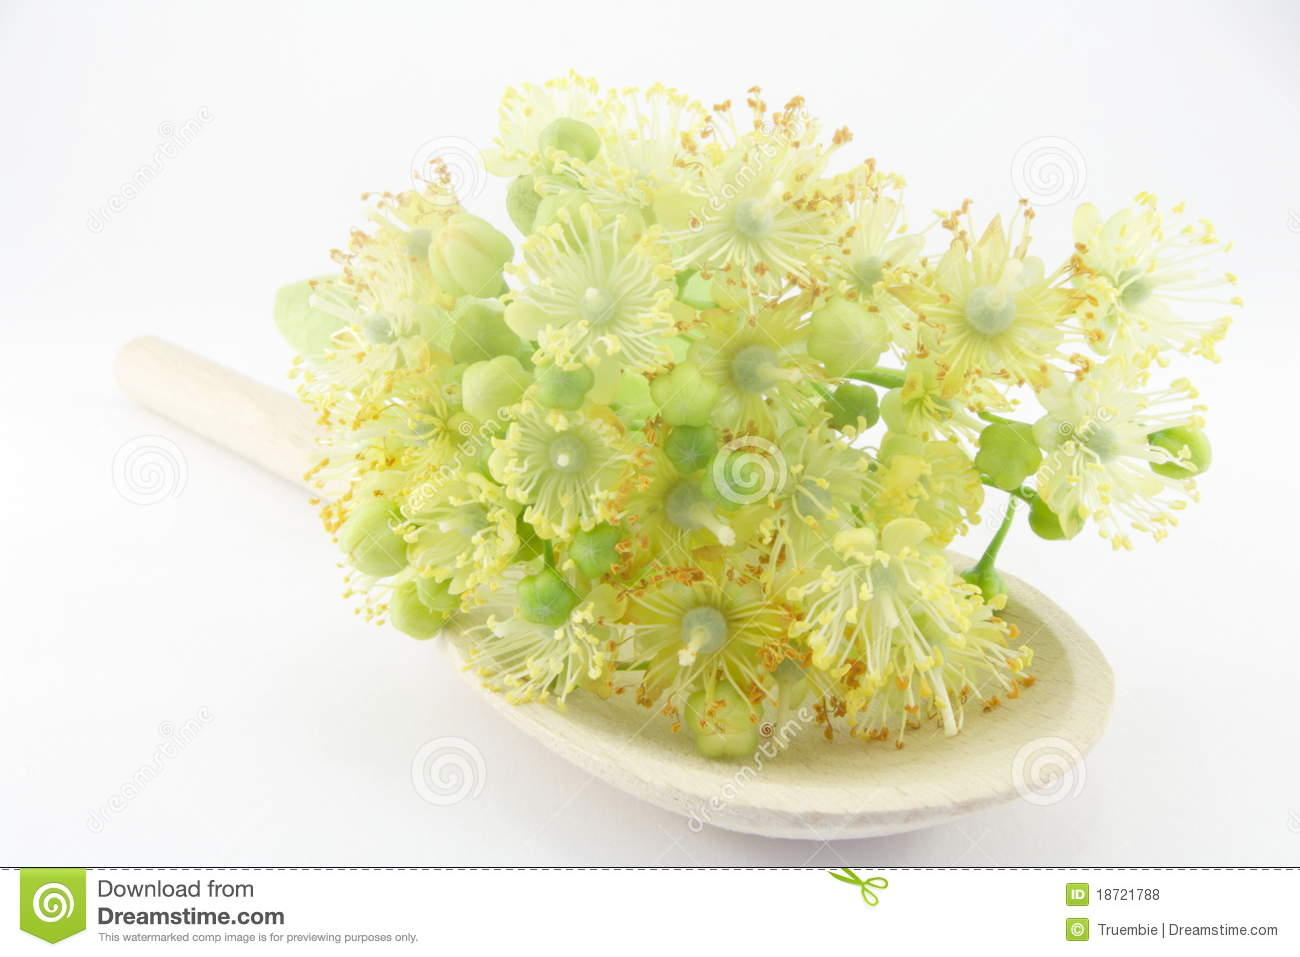 Linden Flowers Royalty Free Stock s Image